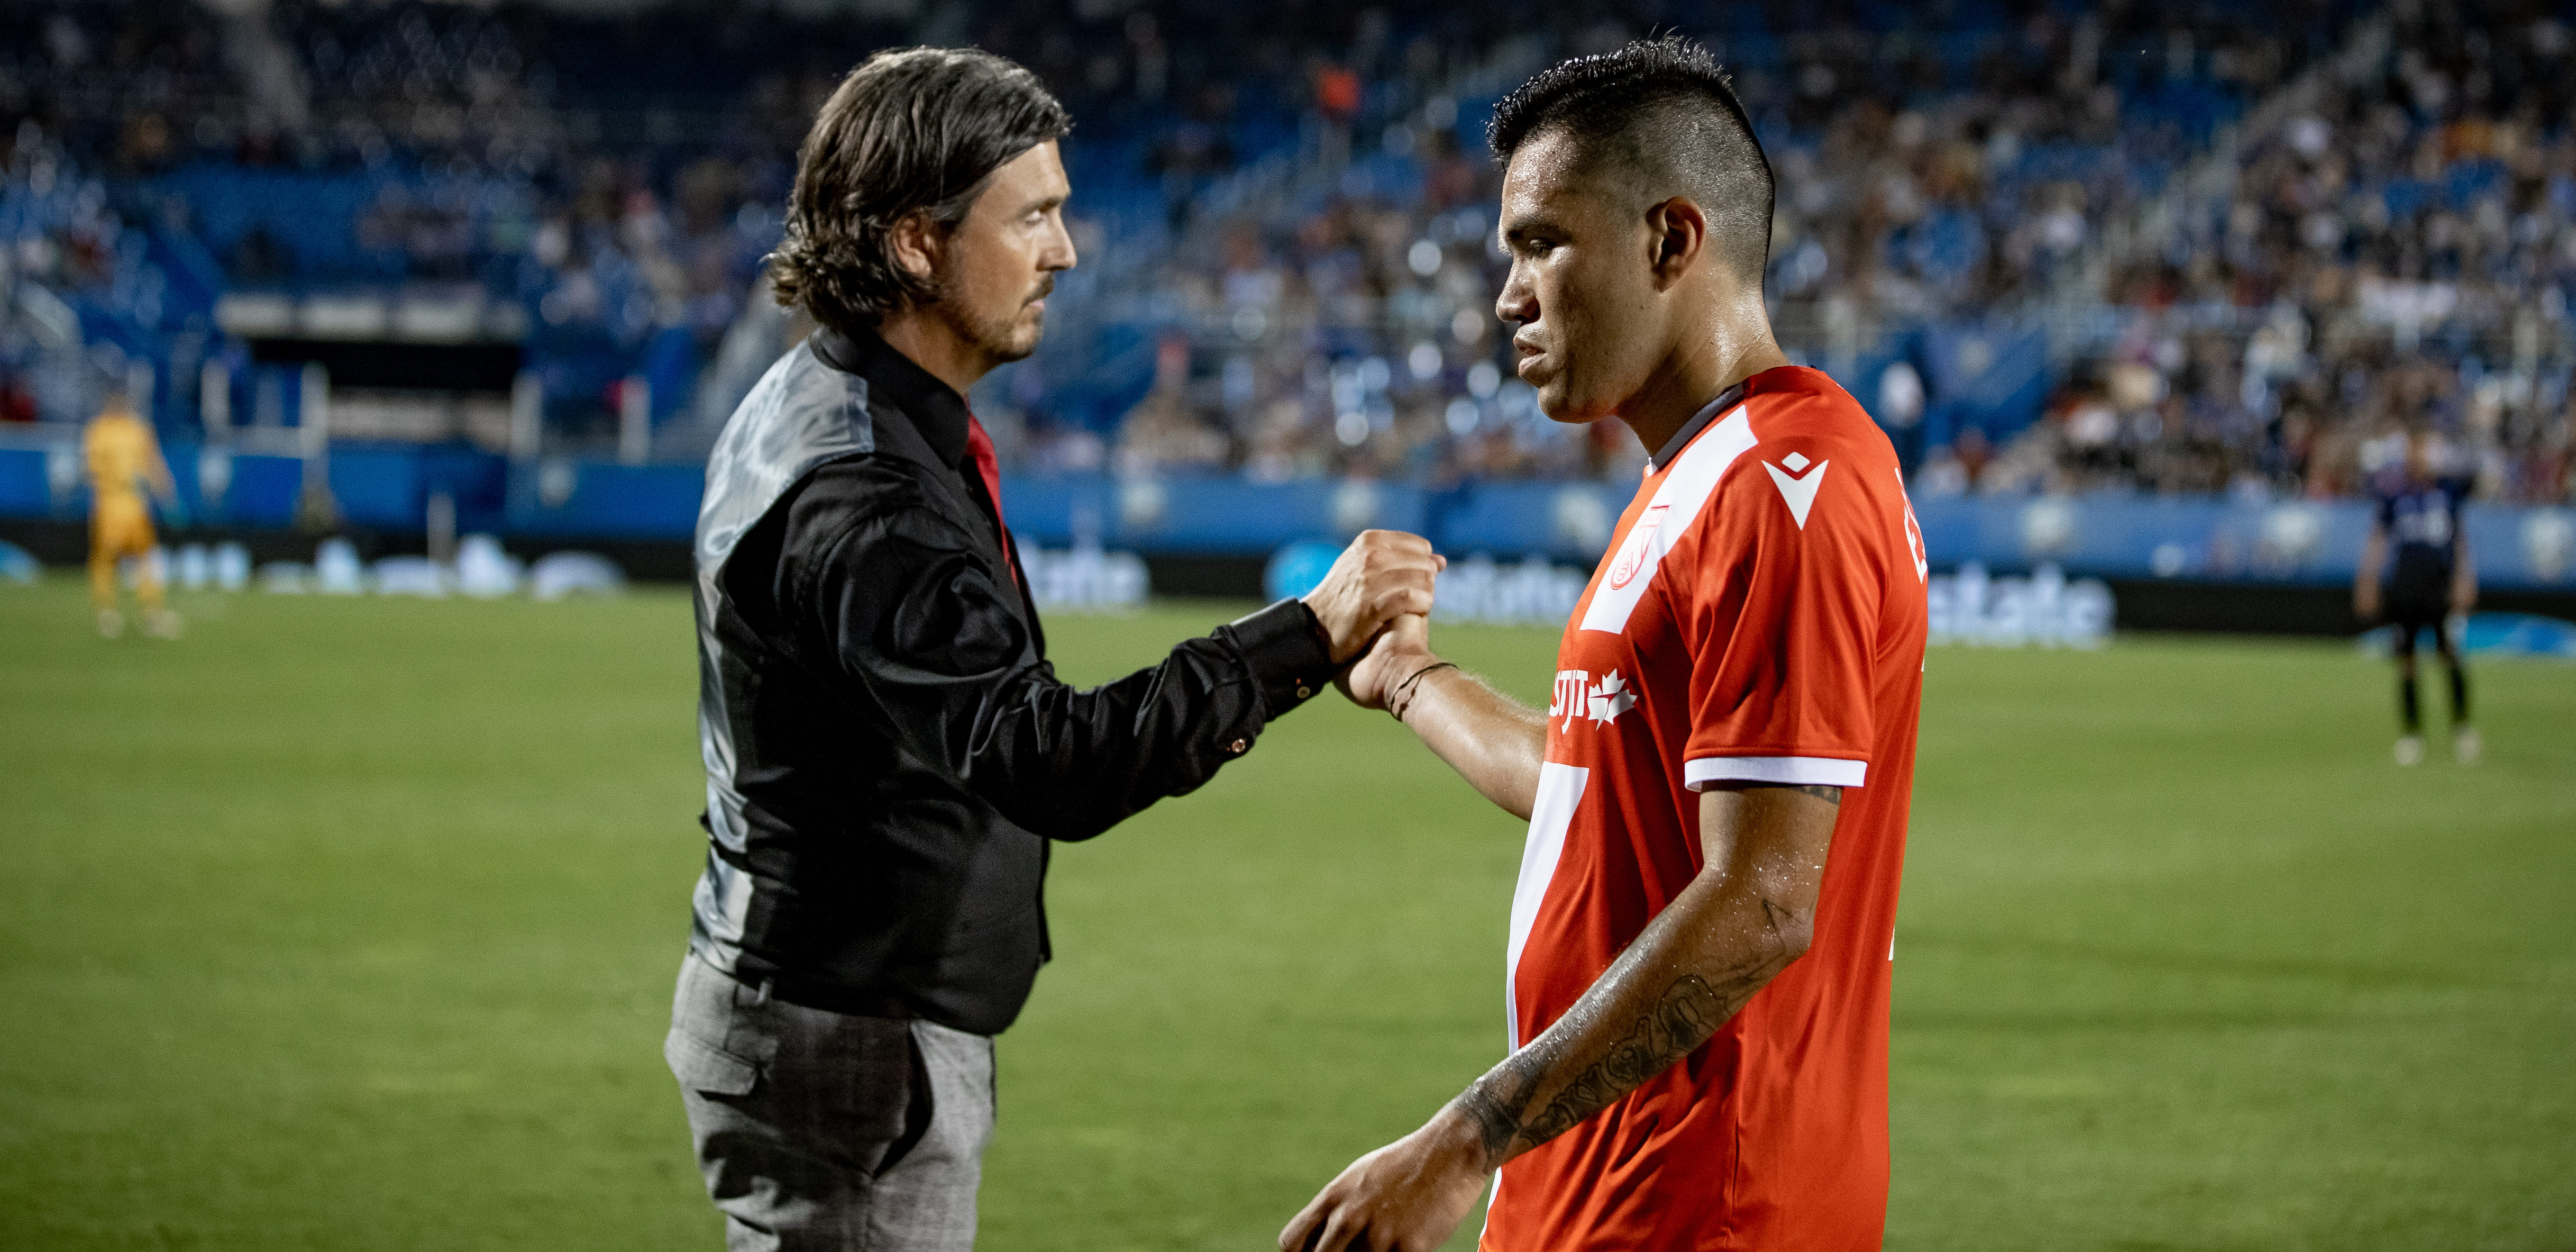 Cavalry head coach Tommy Wheeldon Jr. shakes hands with Jose Escalante in Montreal. (Photo: Nora Stankovic/CPL).